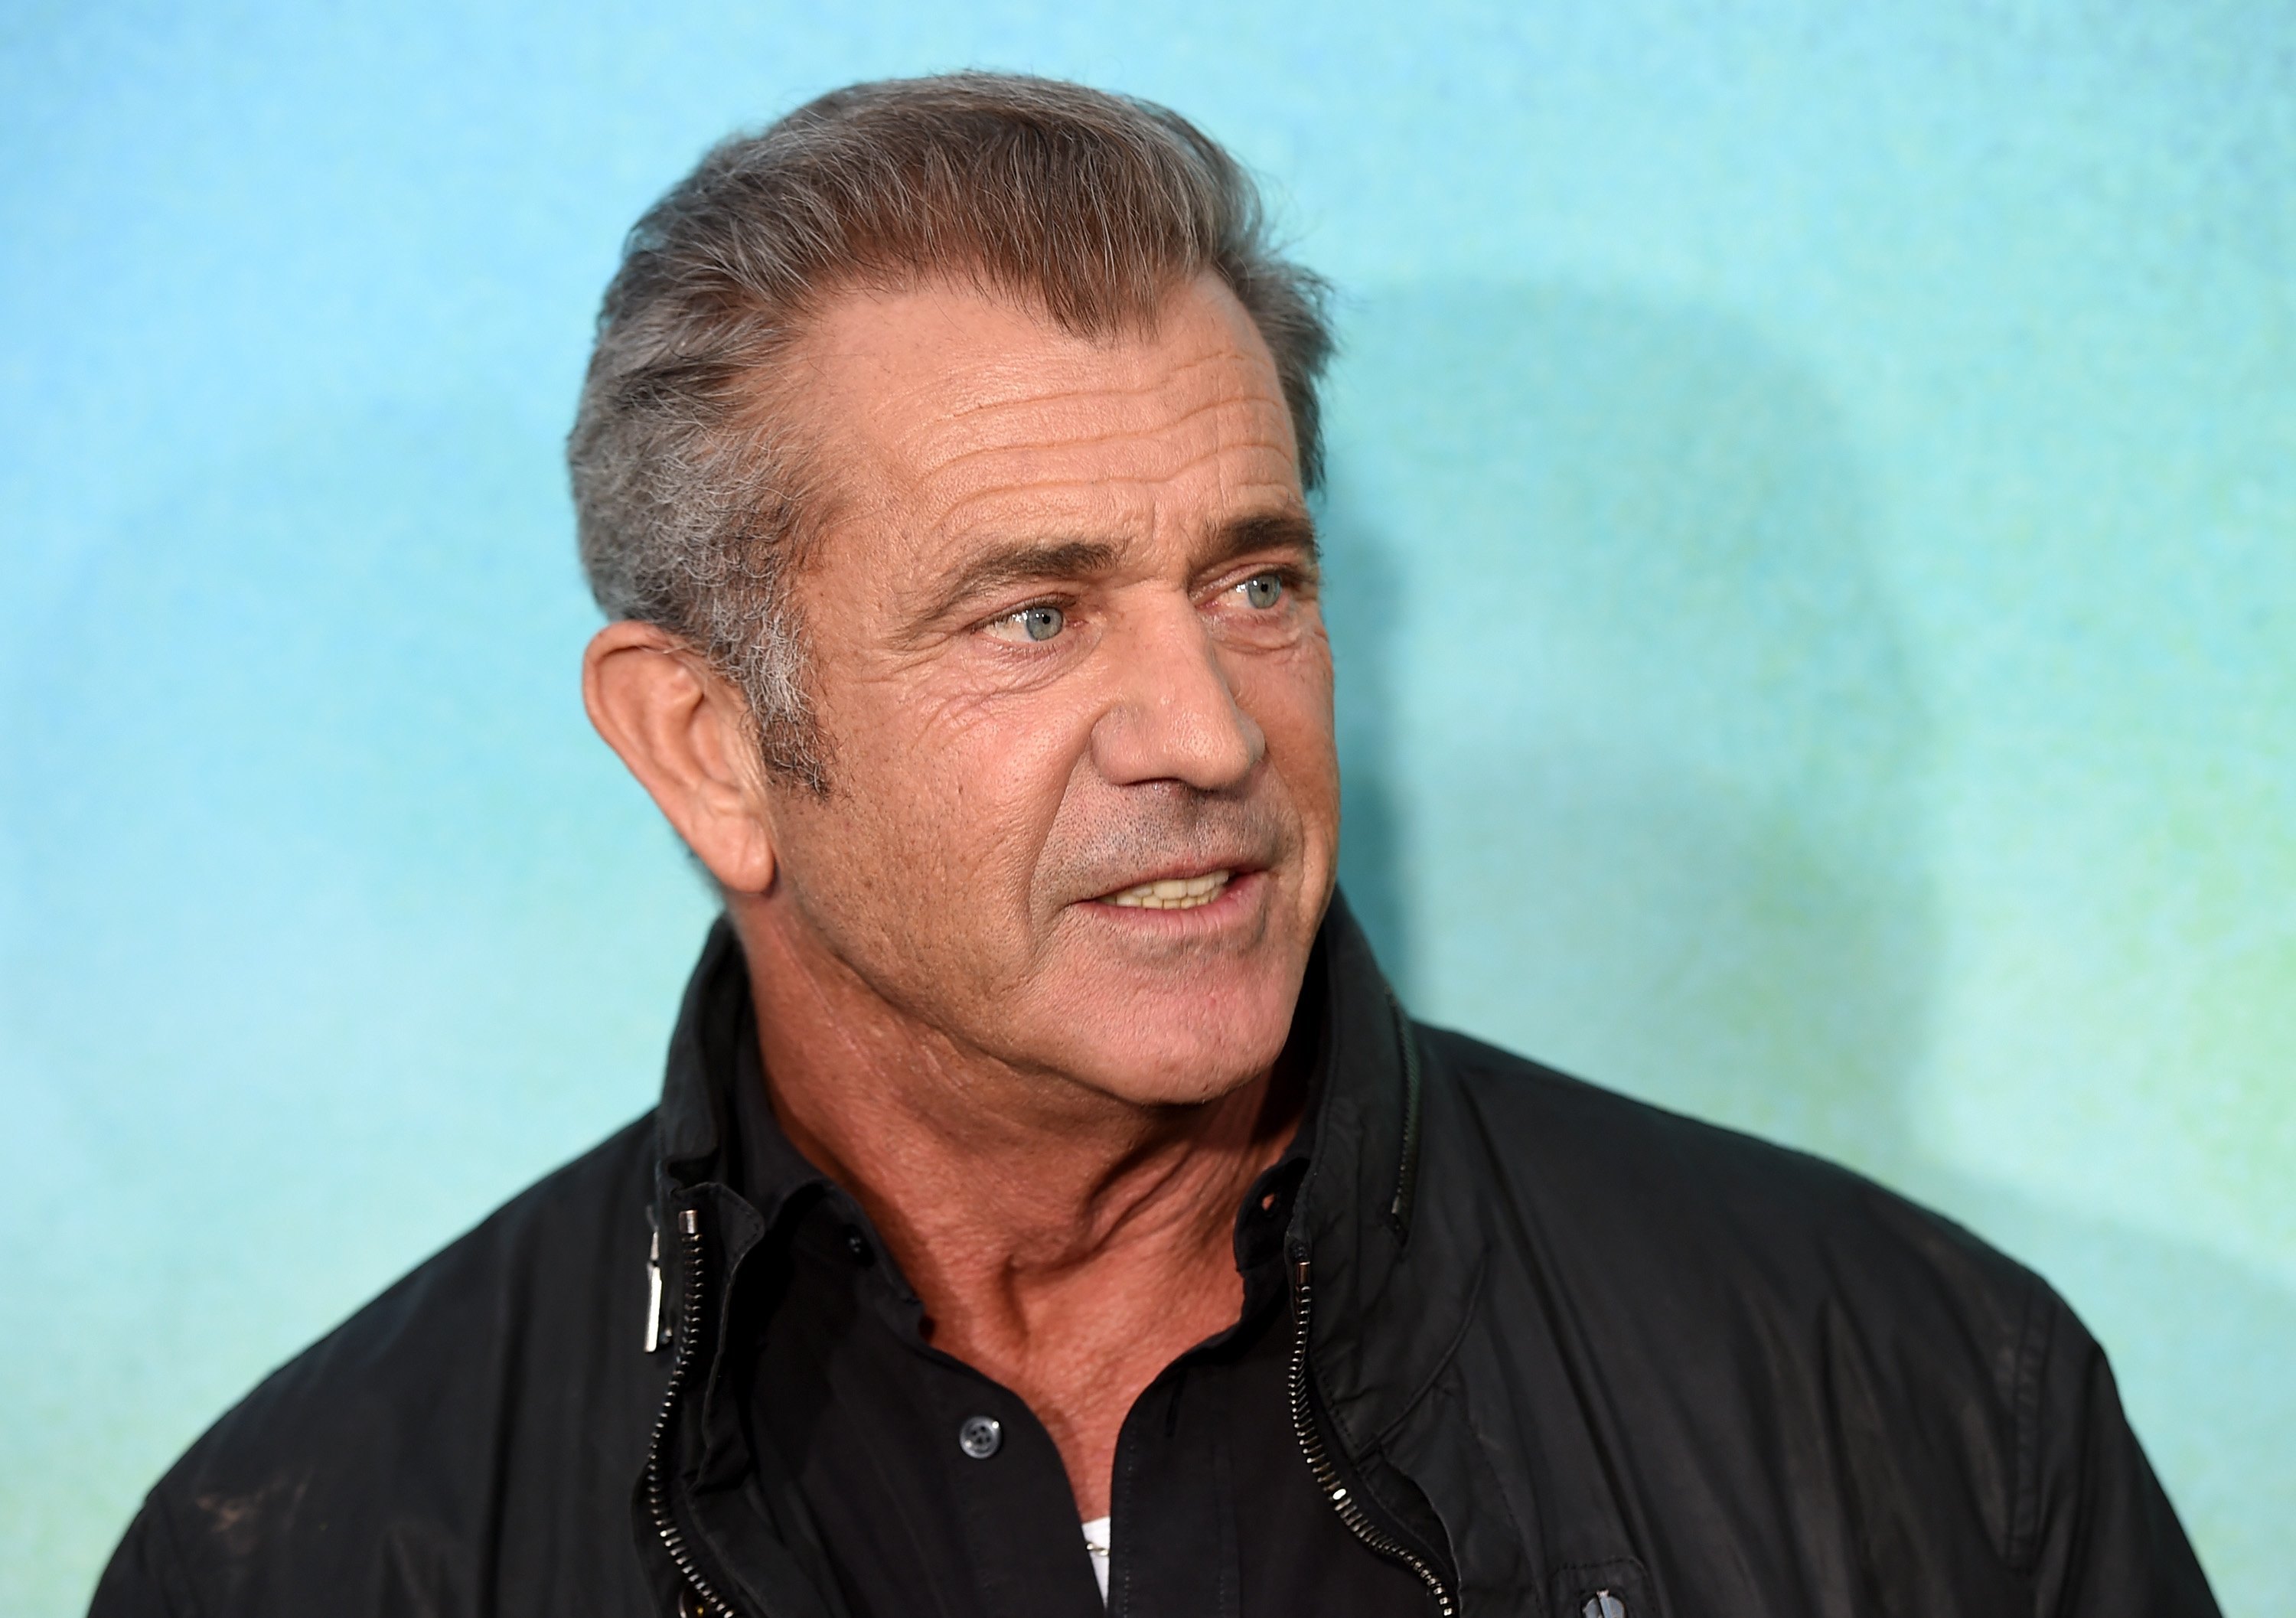 Image Source: Getty Images/Mel Gibson smiling for the camera